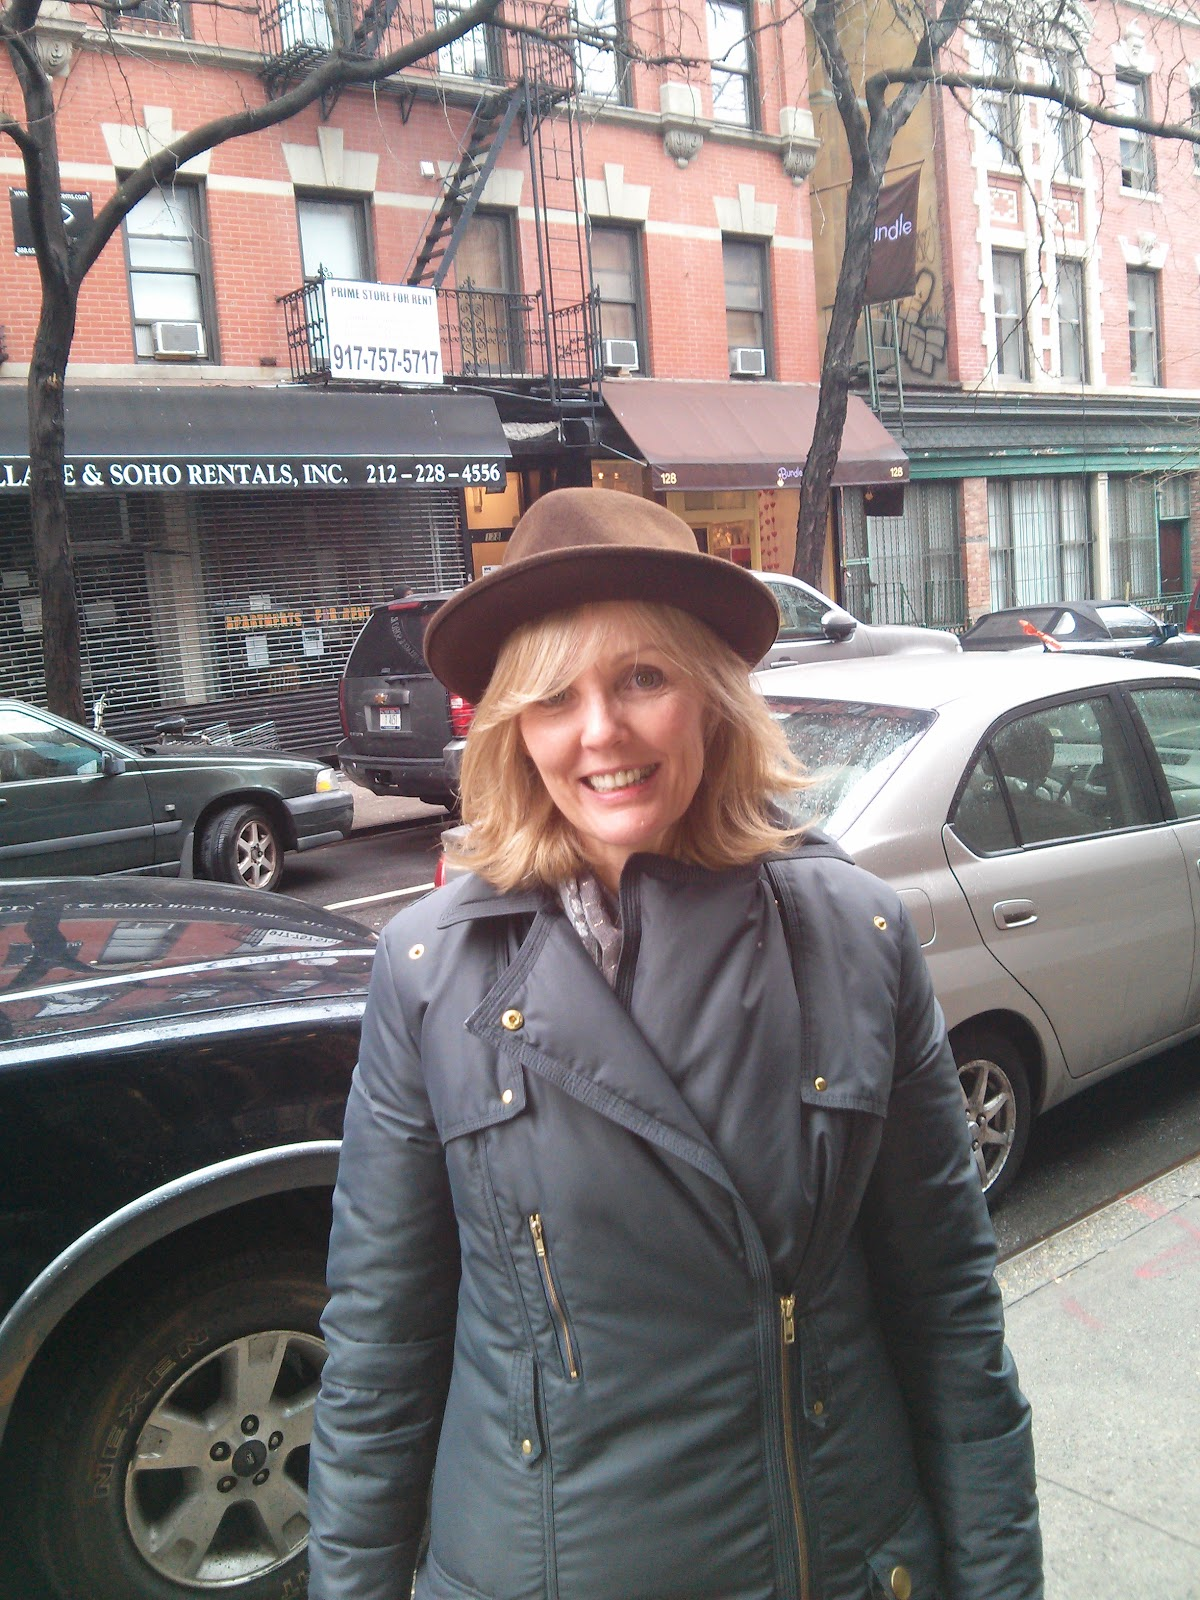 Stetson Hat on a Lady in NYC